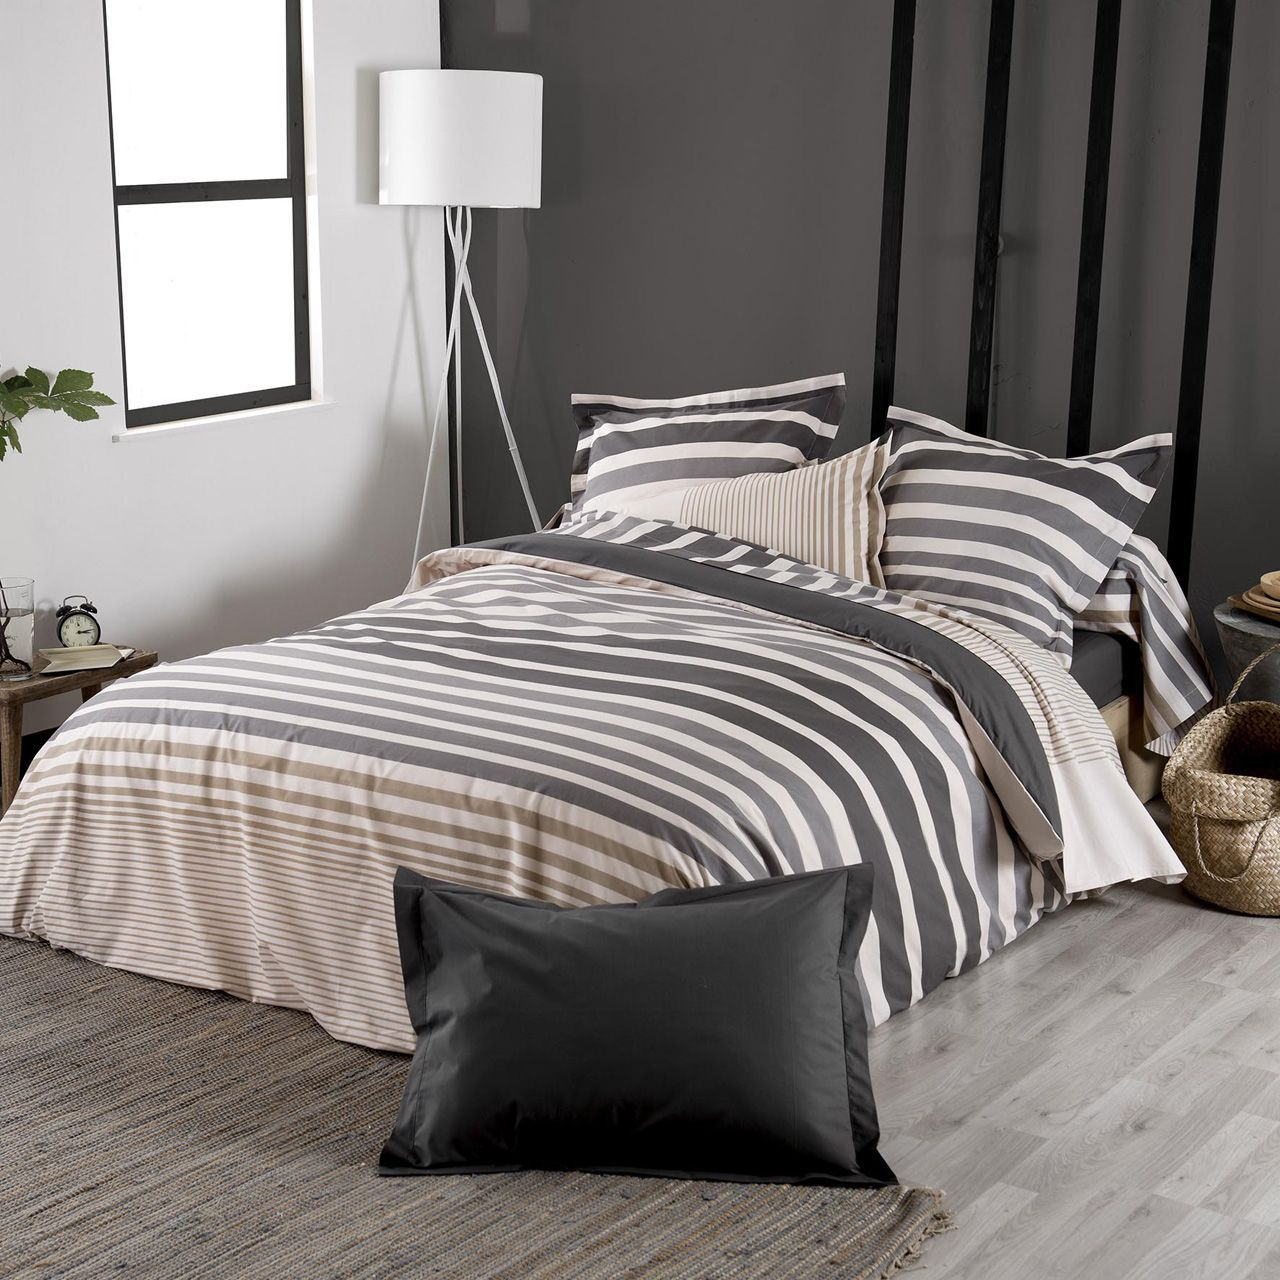 taie de traversin stripe rayures ficelle percale 43x140. Black Bedroom Furniture Sets. Home Design Ideas